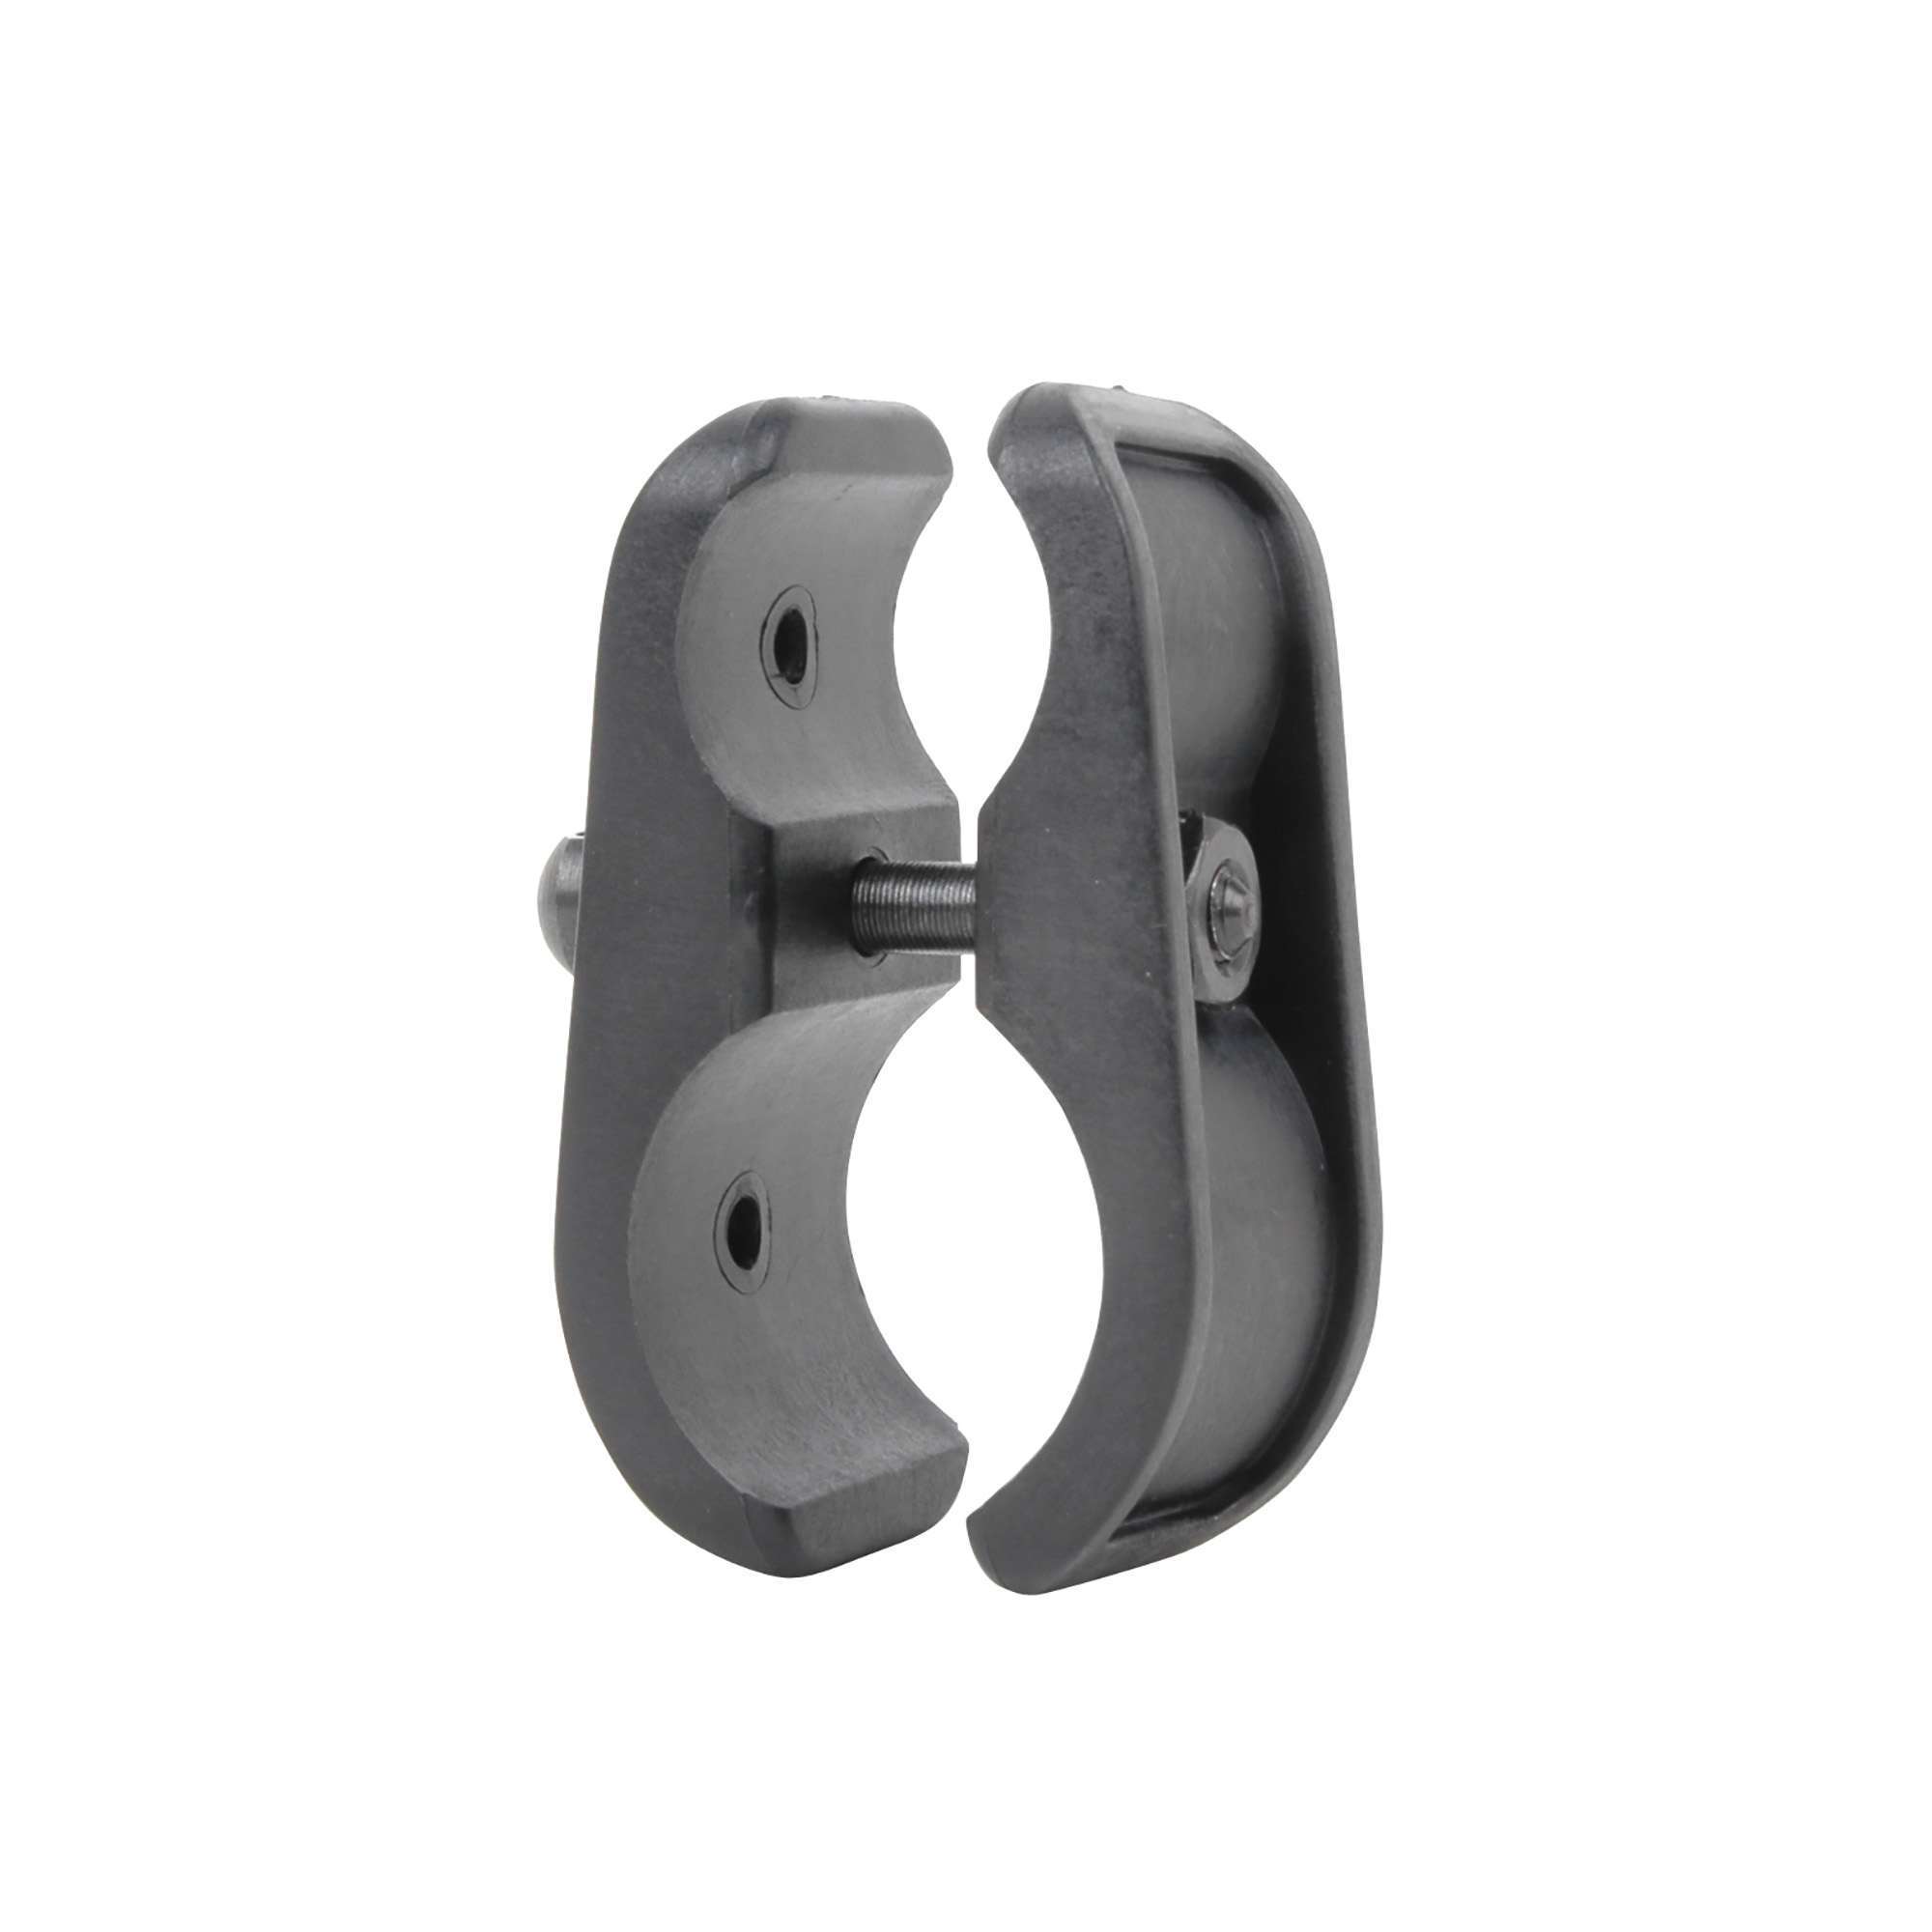 """The Advanced Technology Int. Shotgun Mag Clamp or 1"""" Light Mount and Sling Swivel Stud fits all 12 gauge shotguns. It strengthens the connection of the Mag extension to the barrel and may also be used to mount a 1"""" diameter light or laser to the barrel. Included is a sling swivel stud that is reversible for right or left handed shooters."""